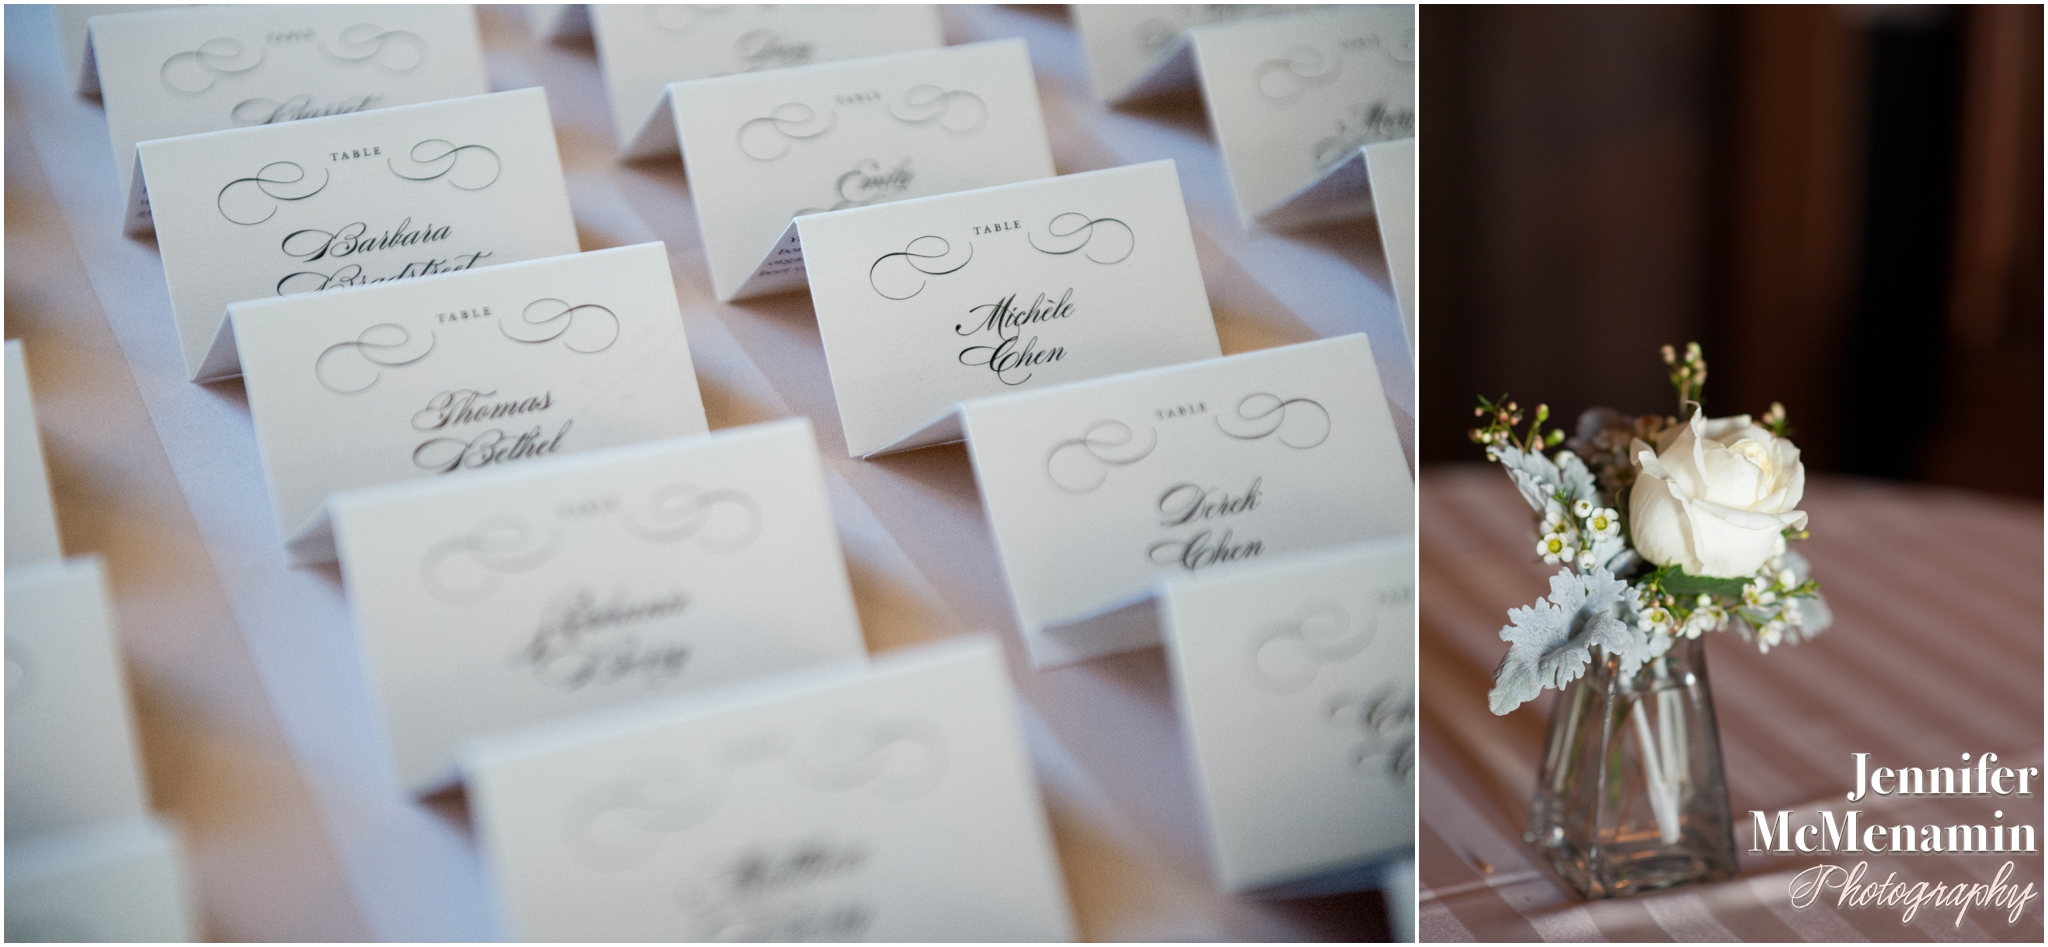 42-Baltimore-Engineers-Club-wedding-placecards